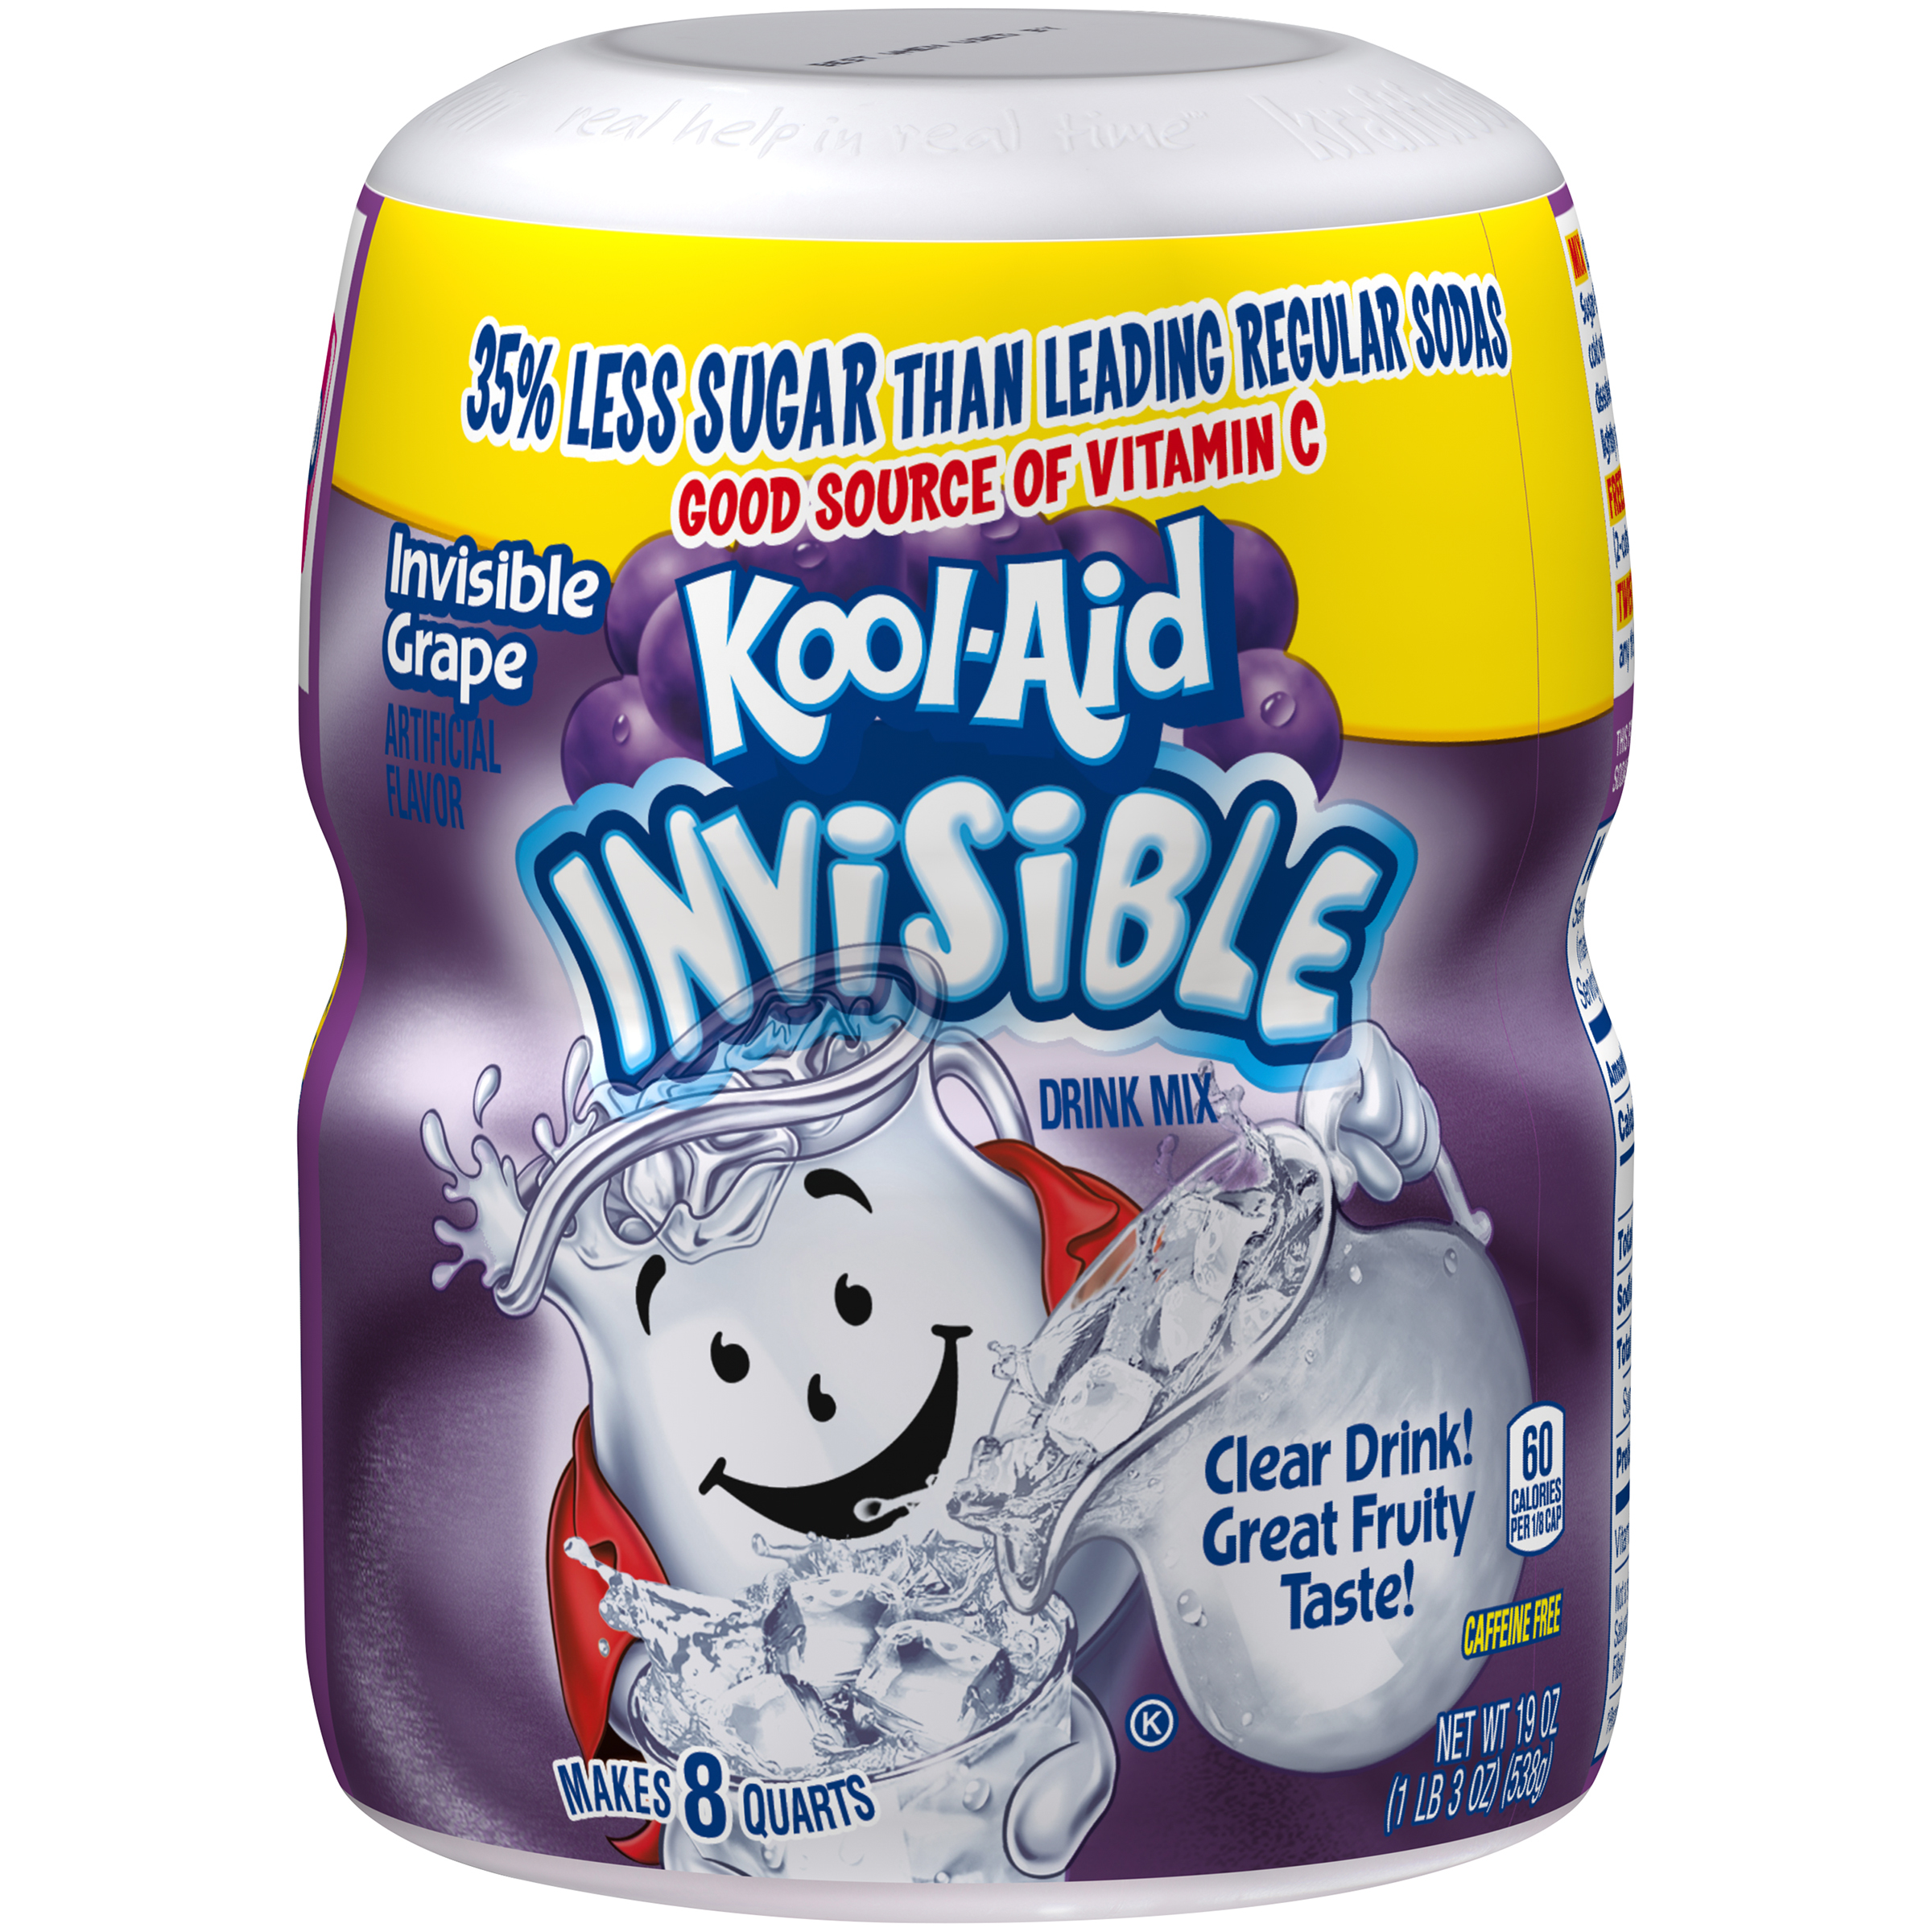 KOOL-AID Invisible Grape  Drink Mix Sugar Sweetened 19 Oz Canister image